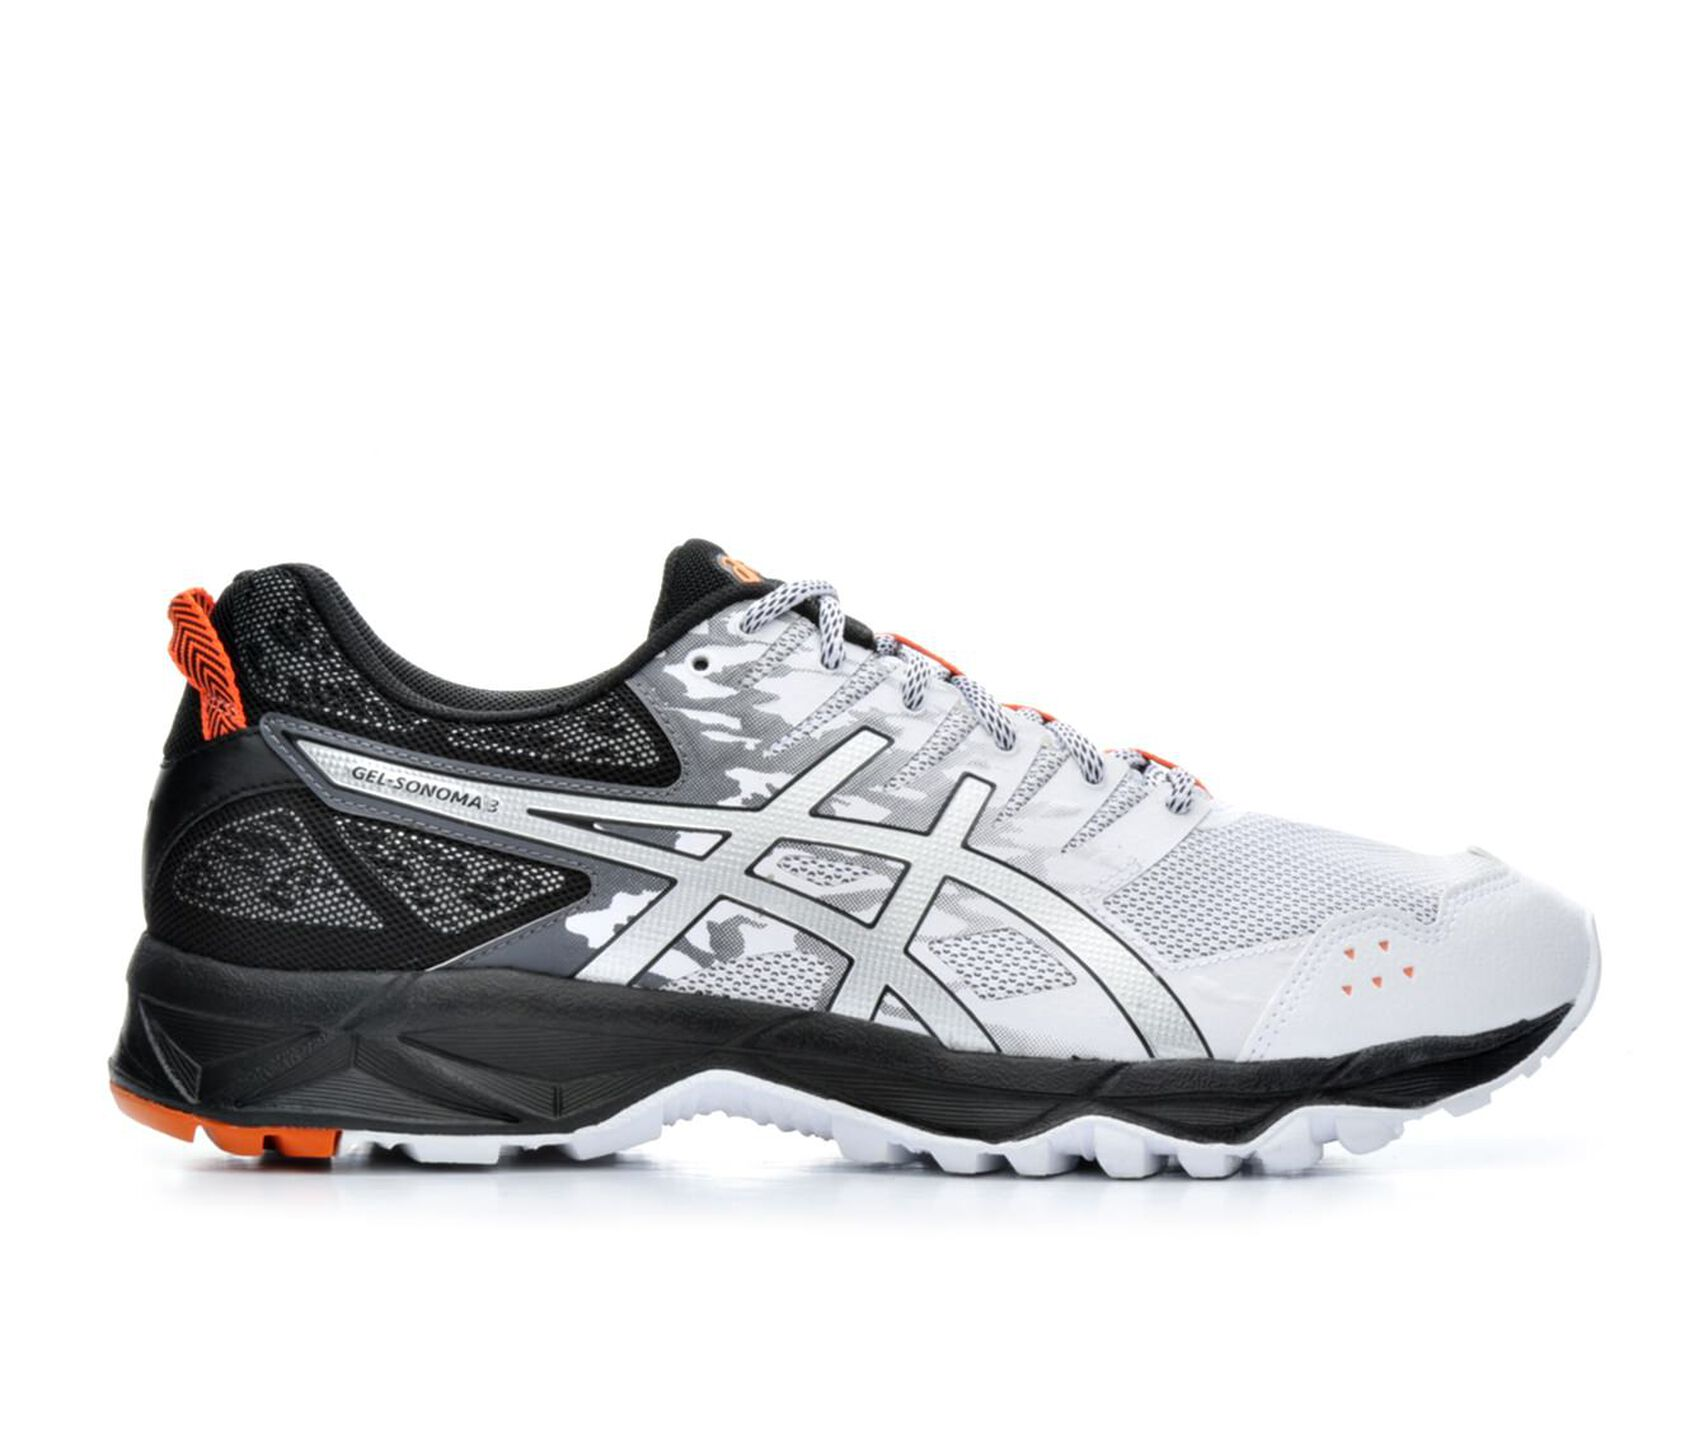 Best Running Shoes For Big Guys With Wide Feet